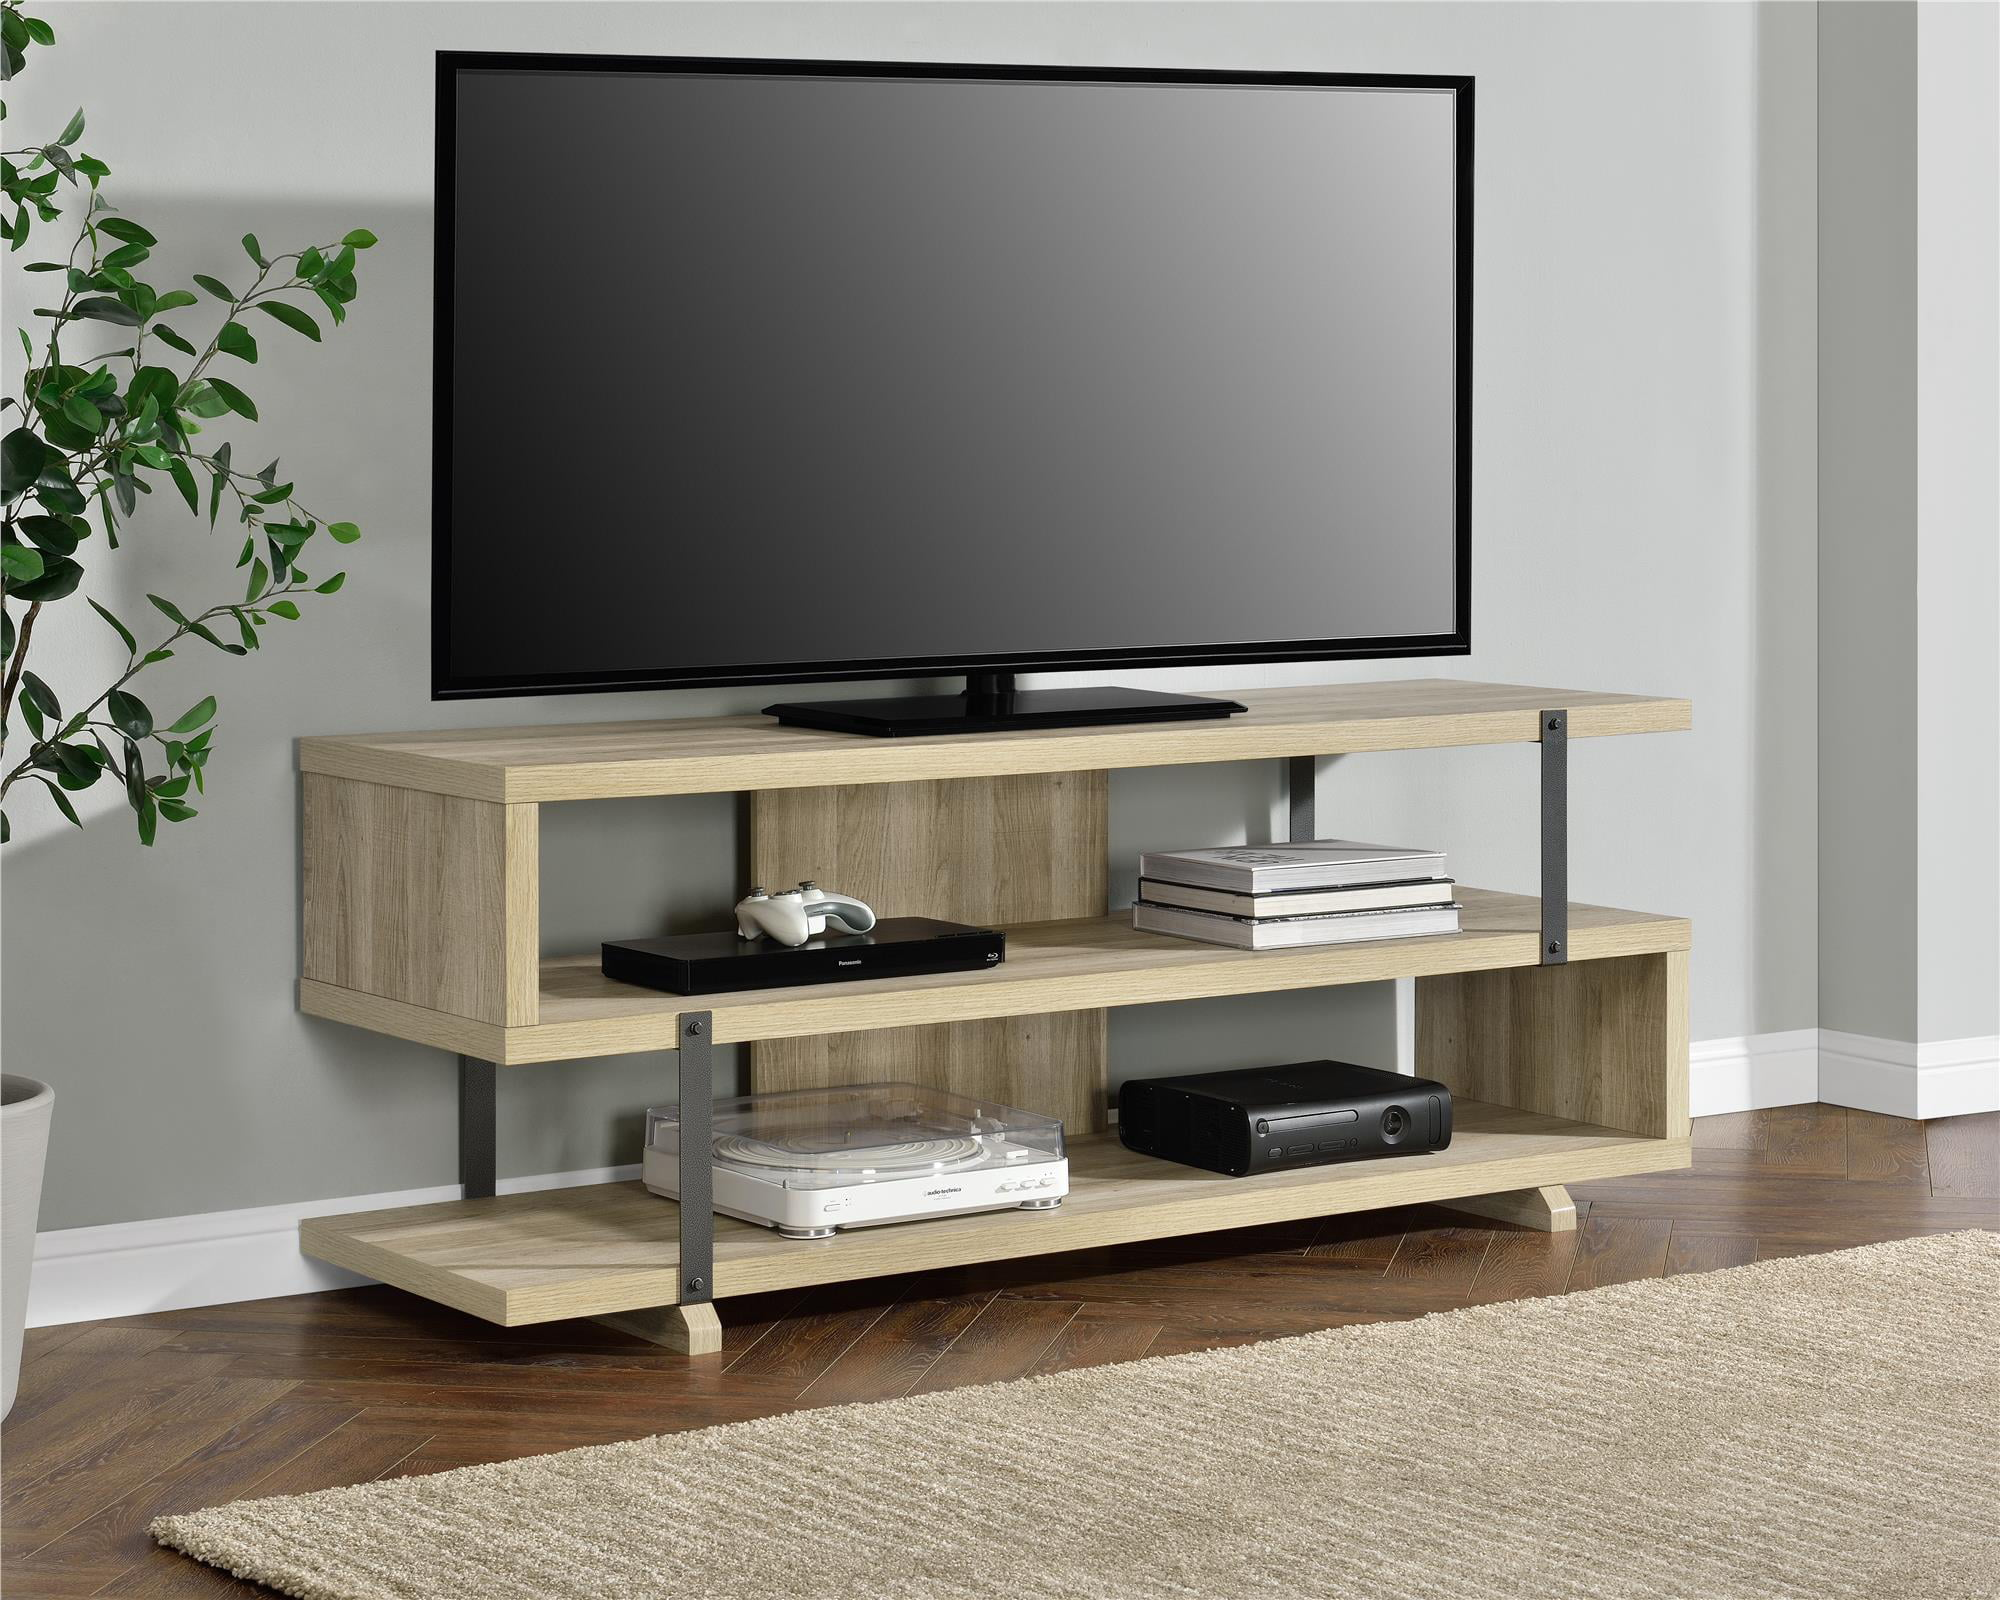 tv stands entertainment centers walmartcom - Entertainment Centers With Bookshelves